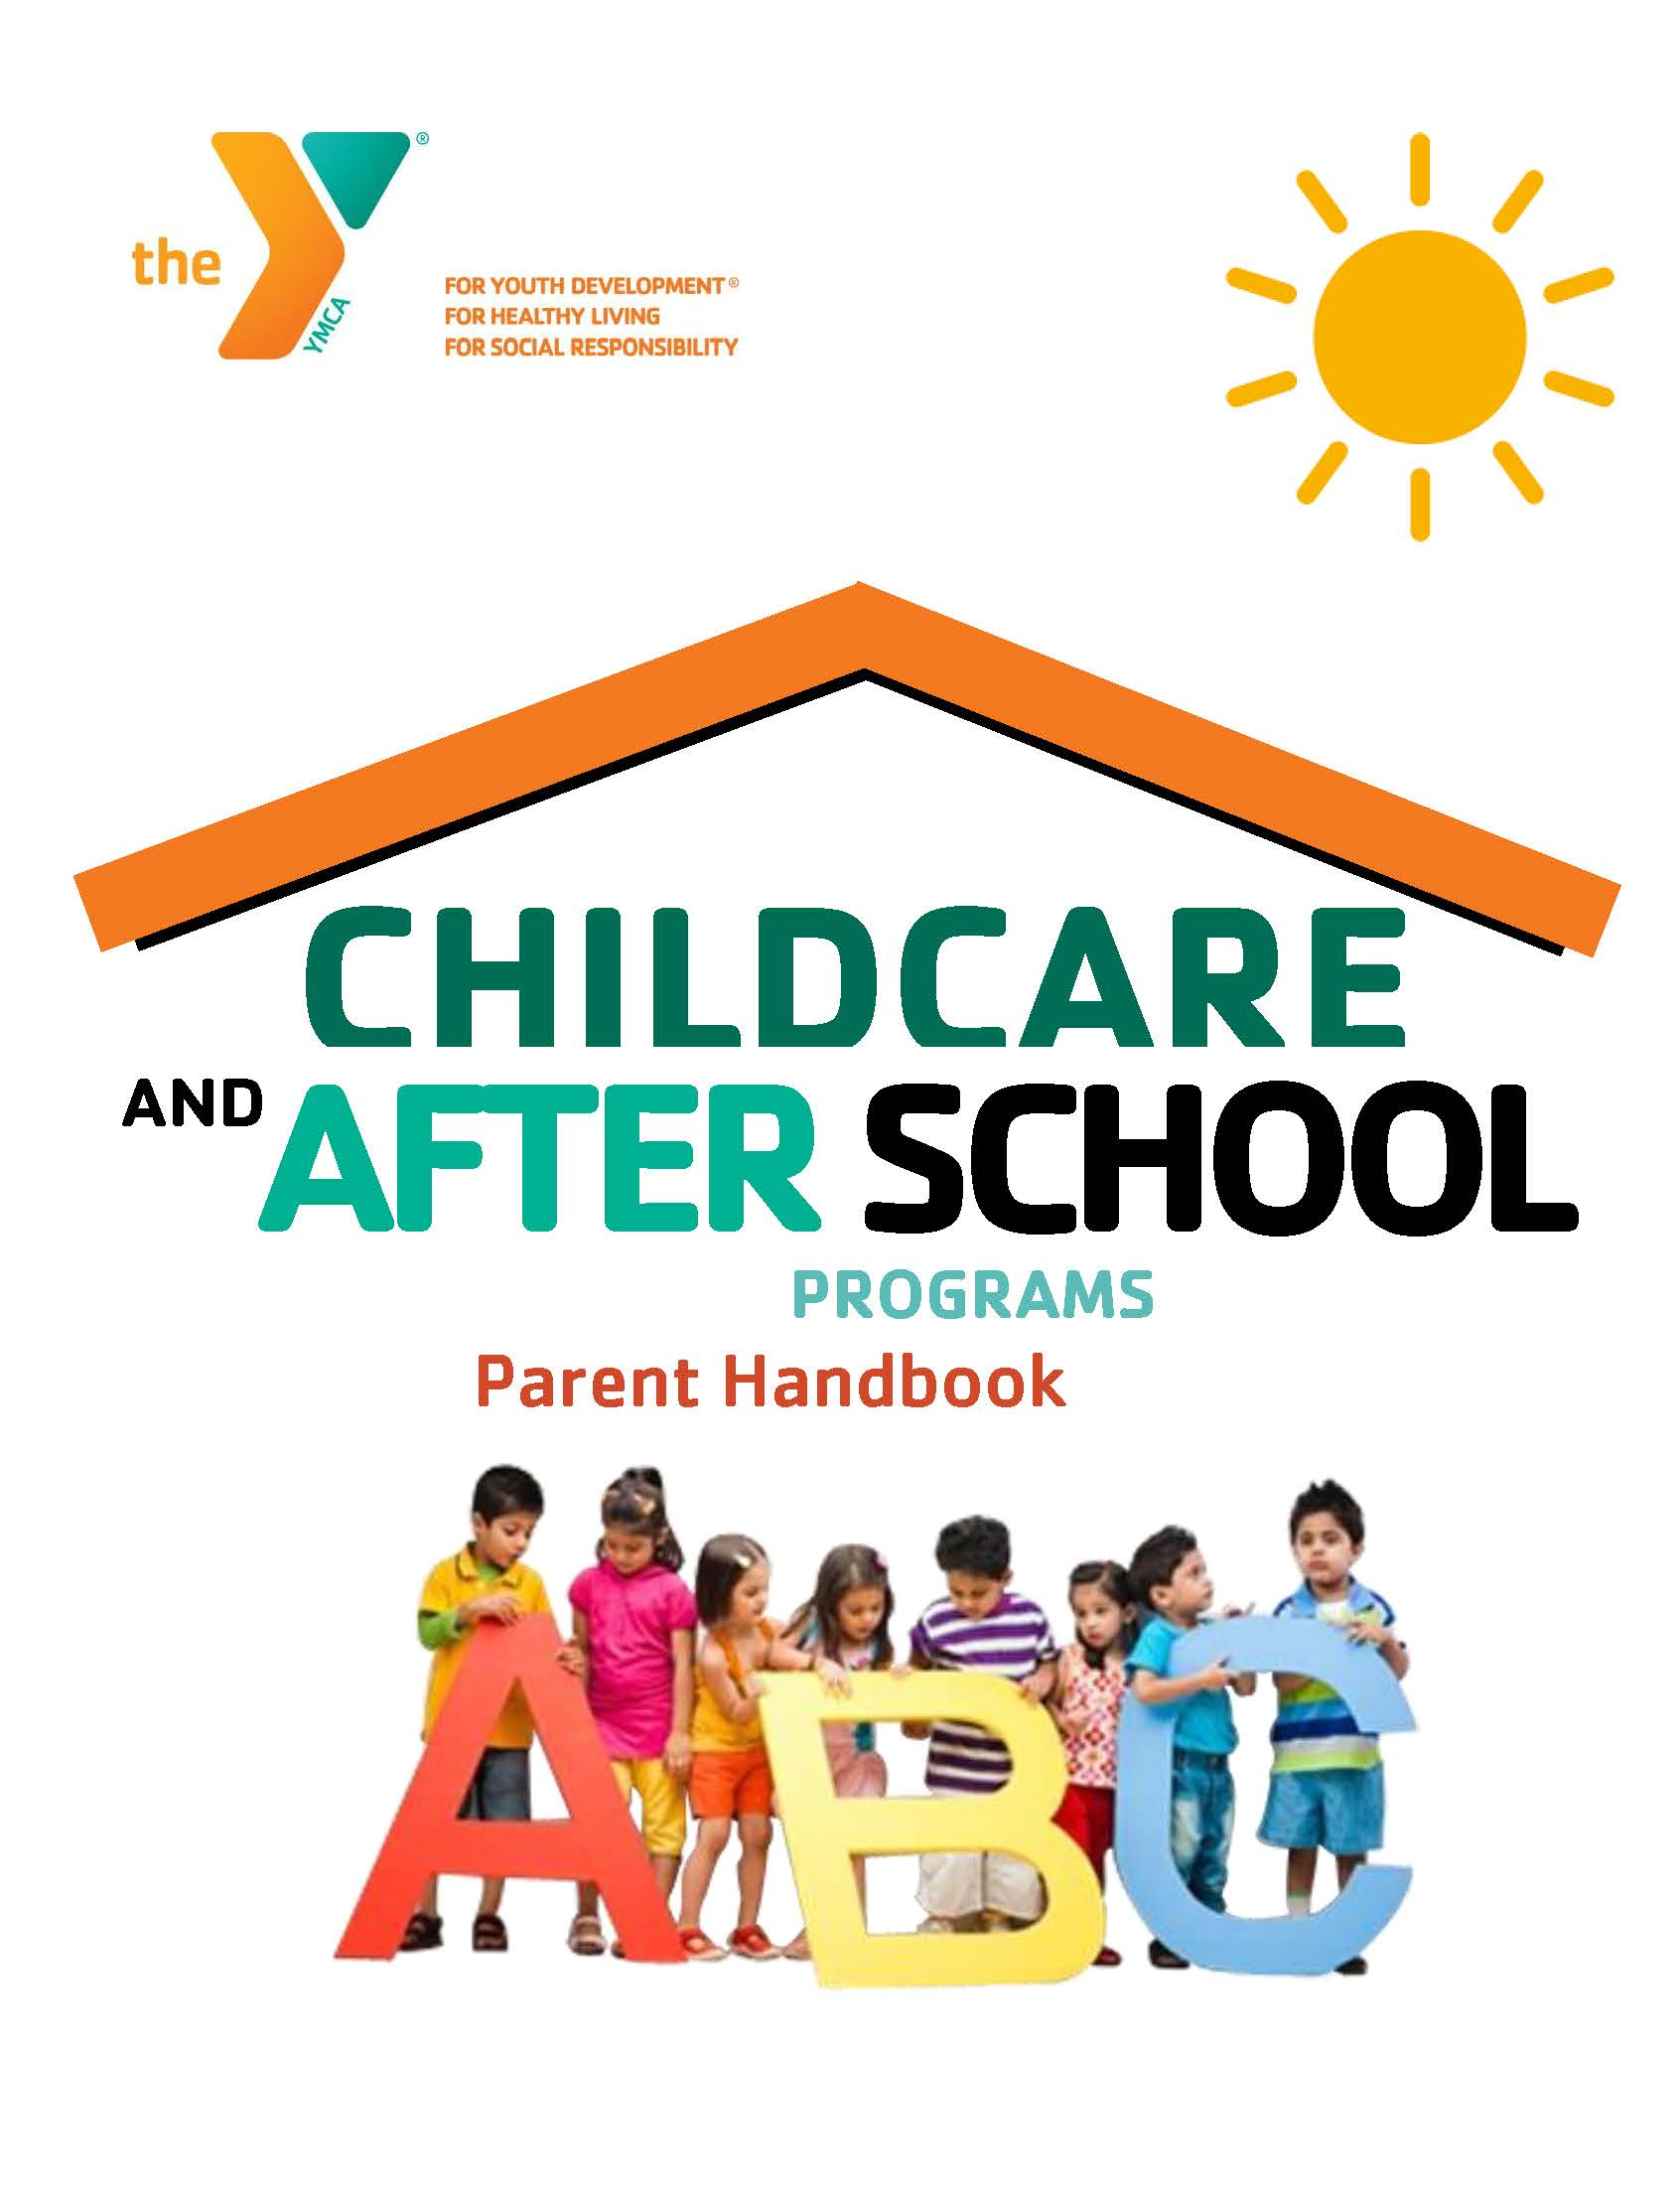 http://mtrymca.org/sites/mtrymca.org/assets/images/programs/YMCA-Child-Care--SACC-Parent-Handbook_Page_01.jpg